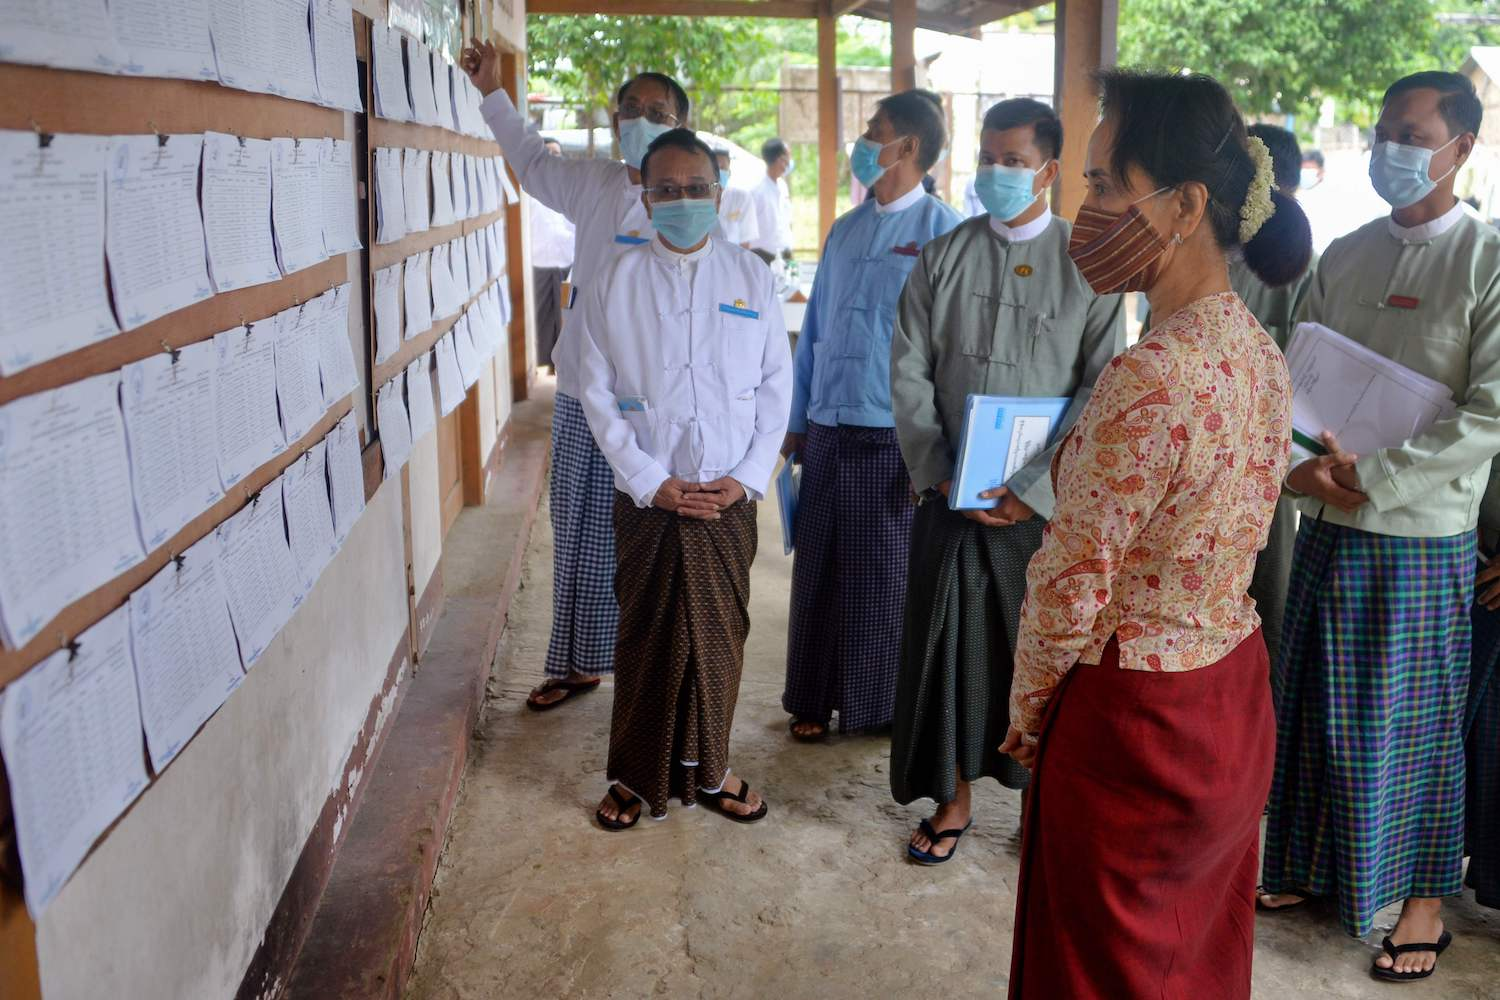 State Counsellor Aung San Suu Kyi looks at voters' lists at an administrative office in Nay Pyi Taw, the capital of Myanmar, on Friday. Her party is widely expected to win the general election in November. (AFP Photo)